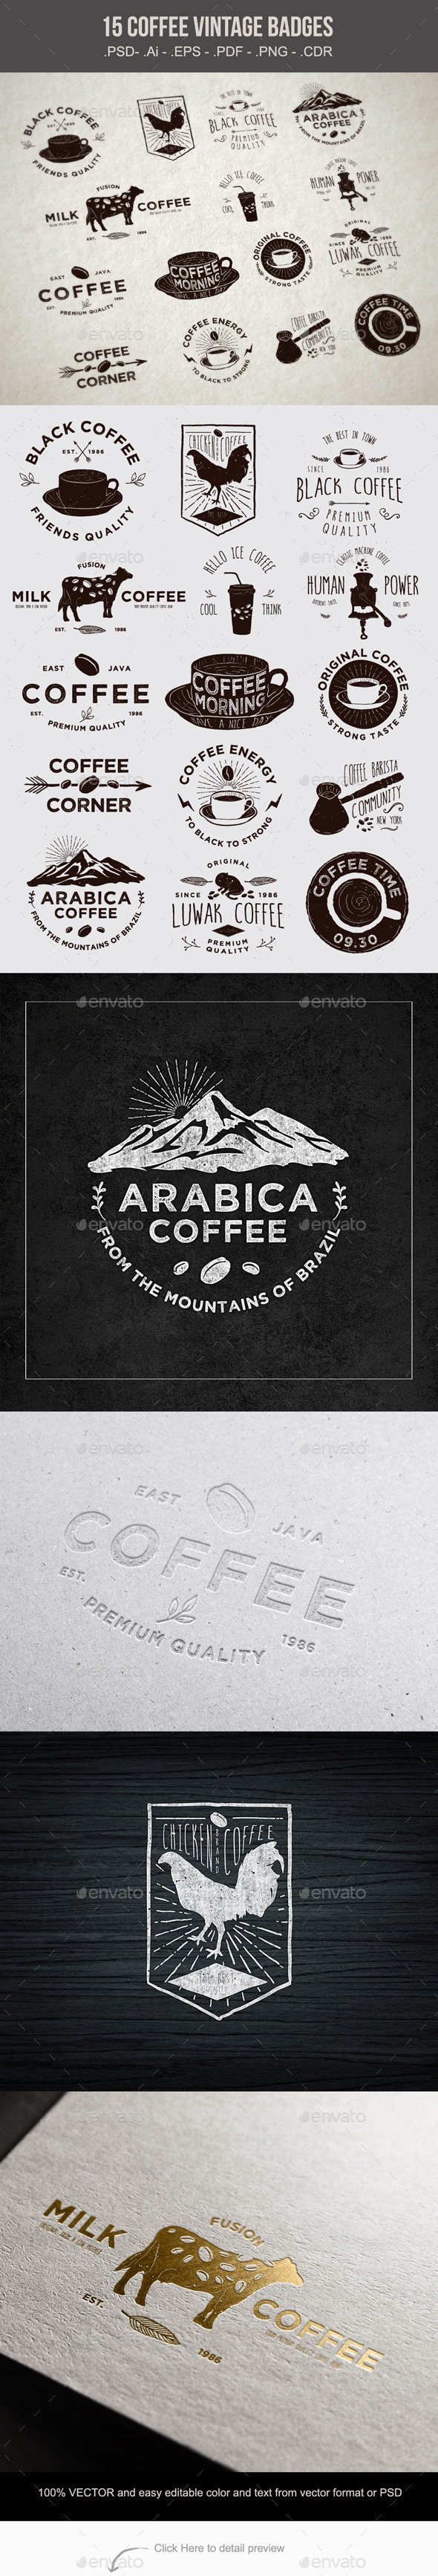 GraphicRiver 15 Coffee Vintage Badges 10611993